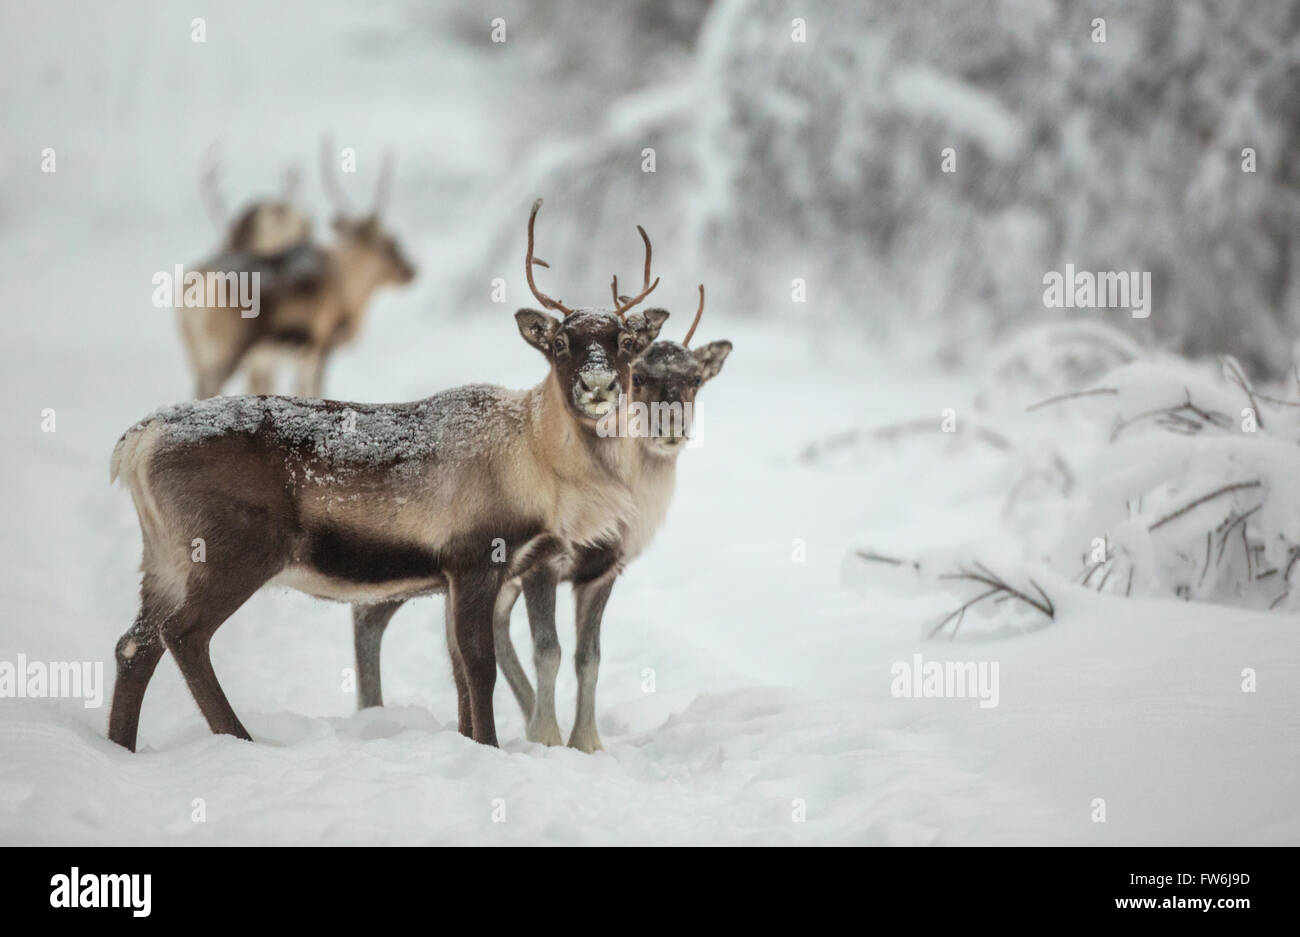 Reindeer standing in forest in winter season looking in to the camera, Gällivare, Swedish Lapland, Sweden - Stock Image